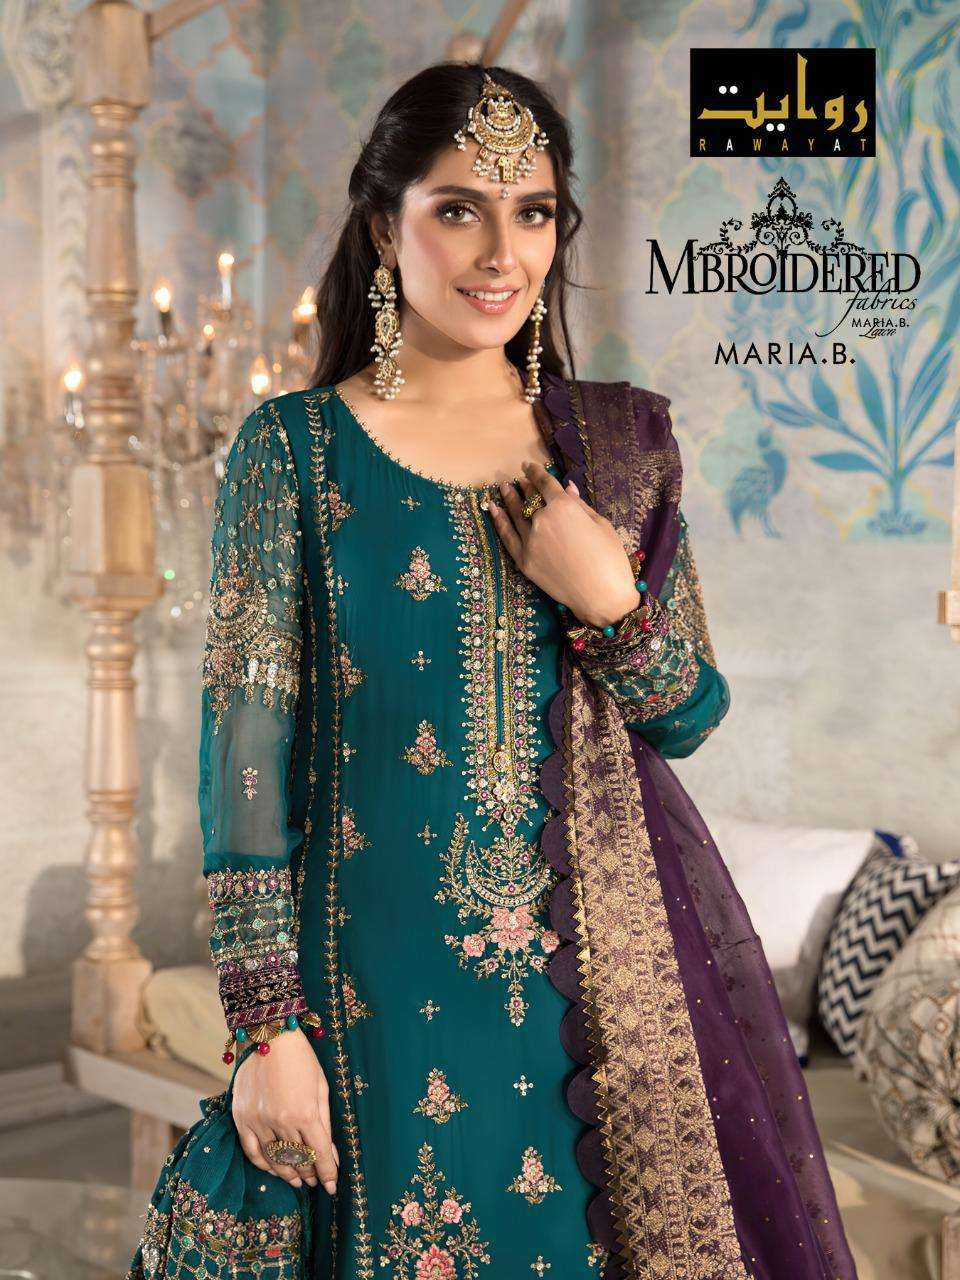 Mbroidered Collection 2021 By Rawayat Pakistani Fancy Suits